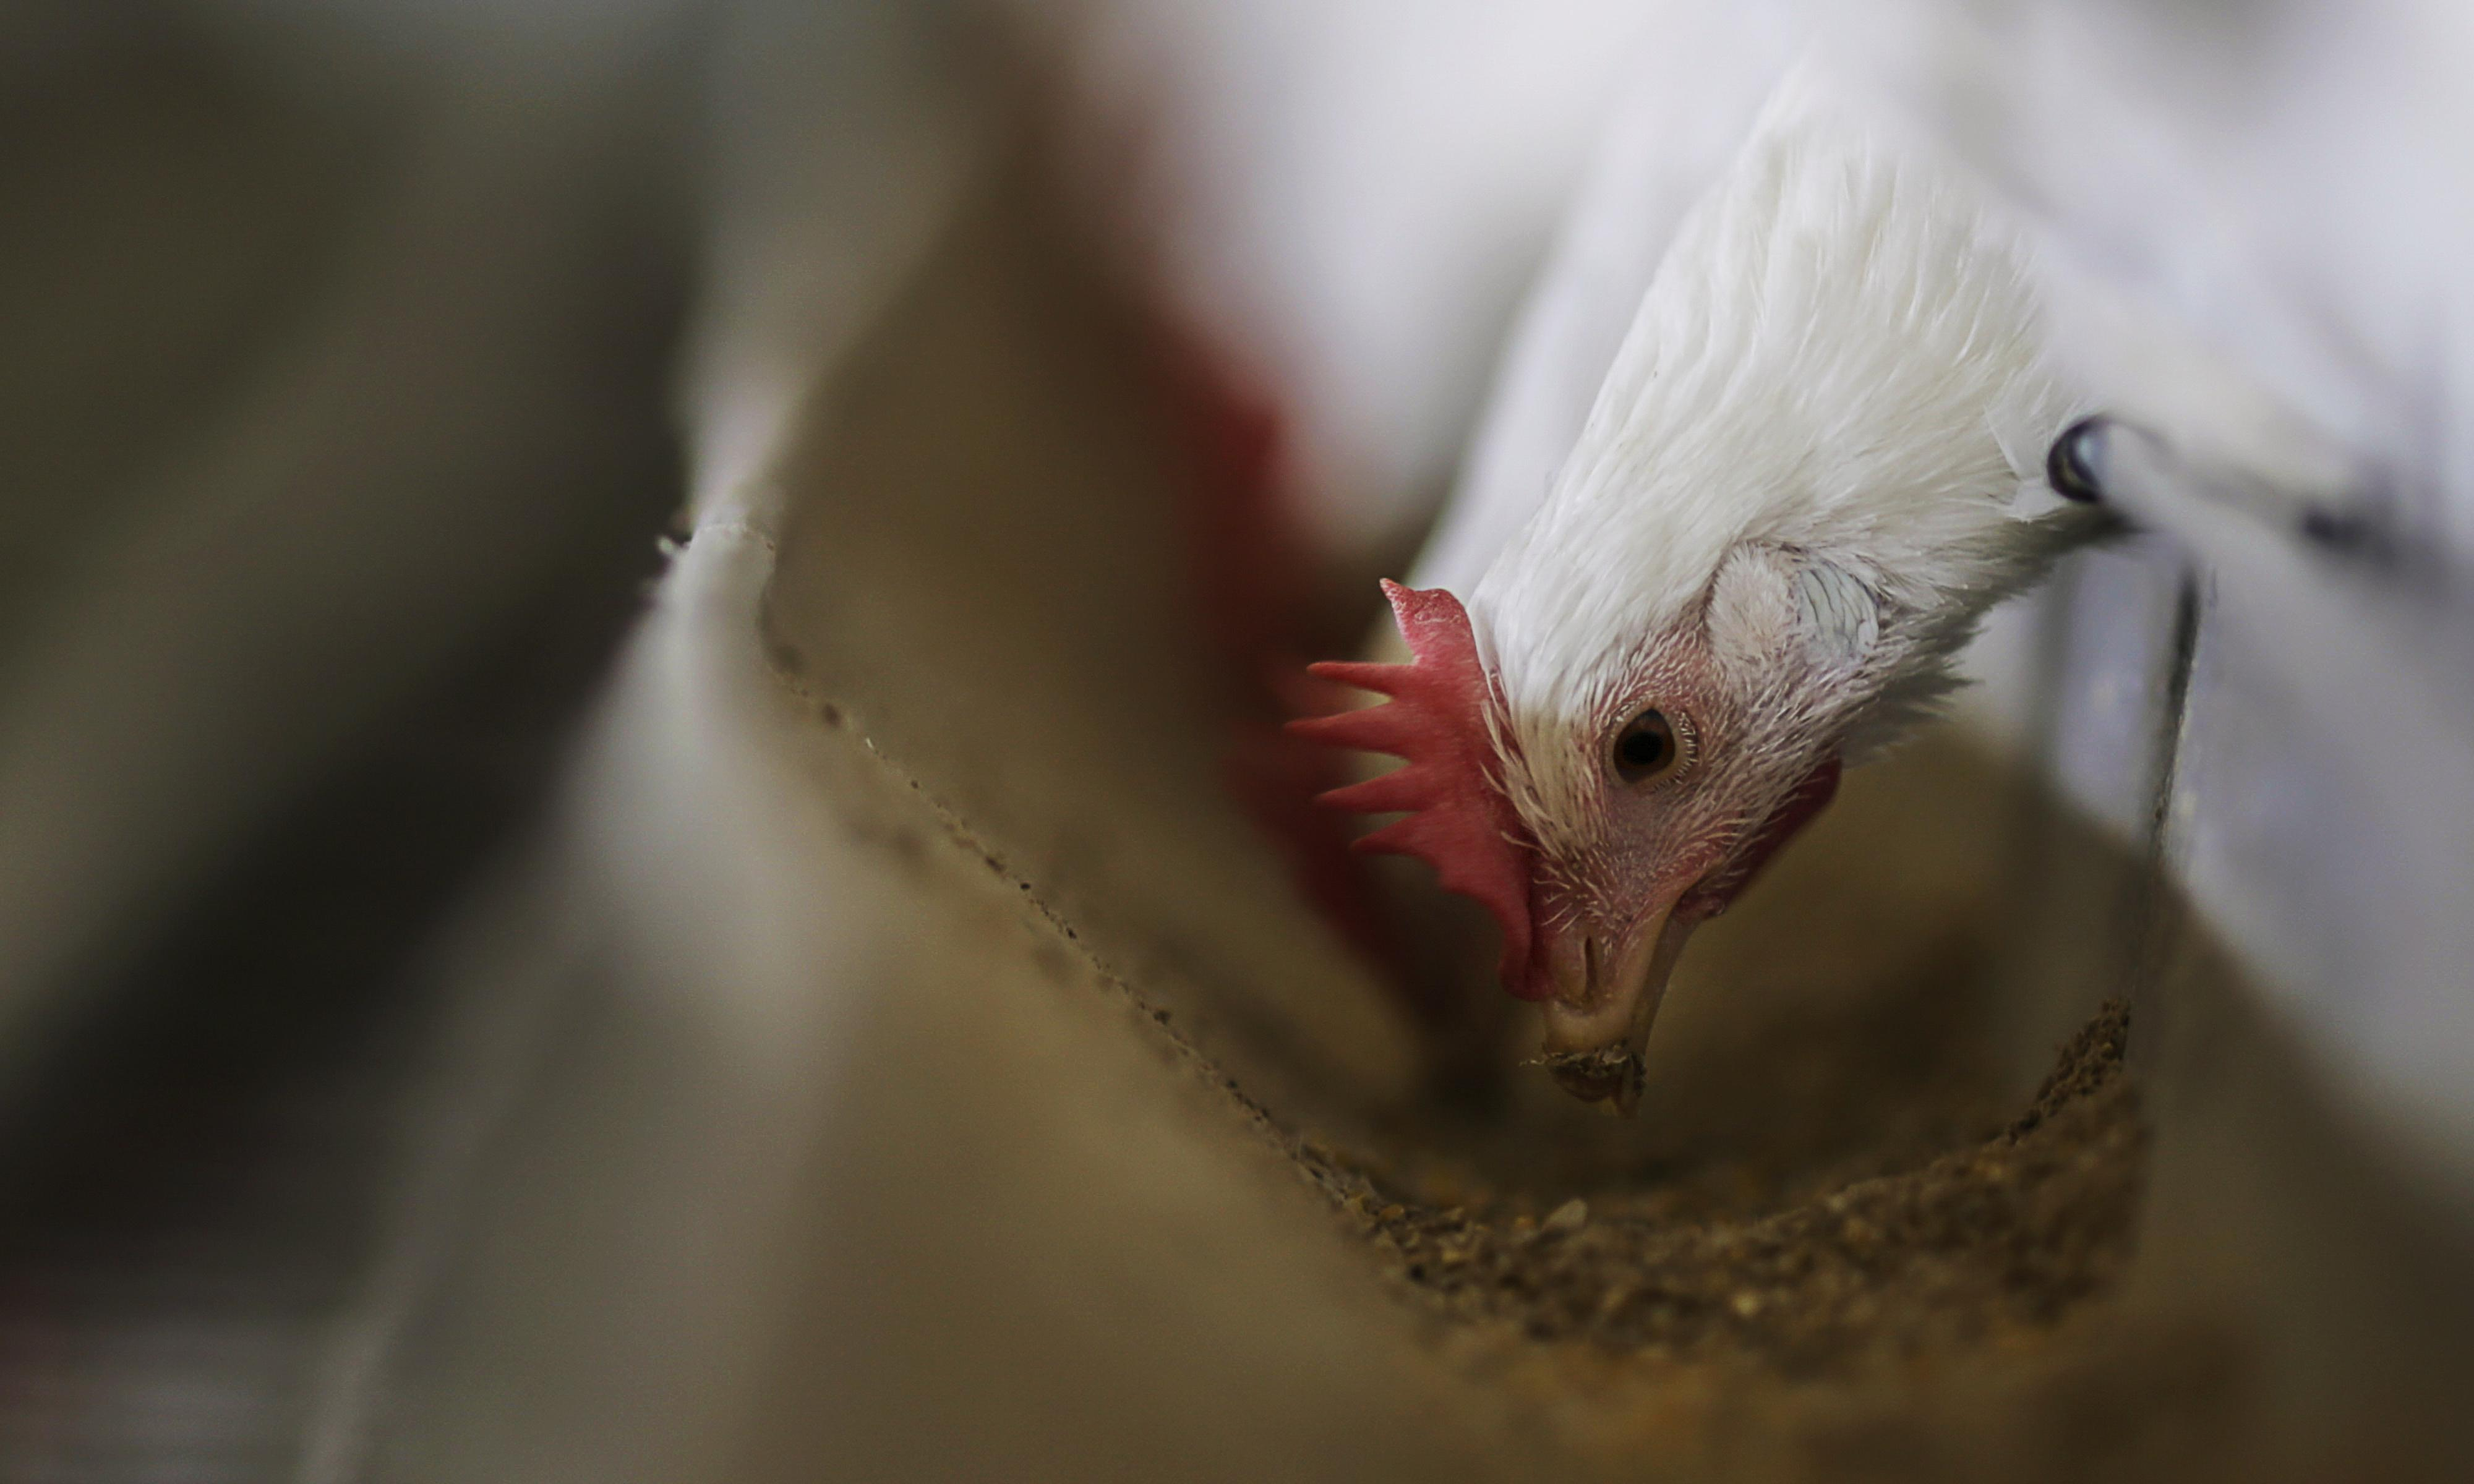 Retailers move to reassure consumers over chicken safety after drug seizure